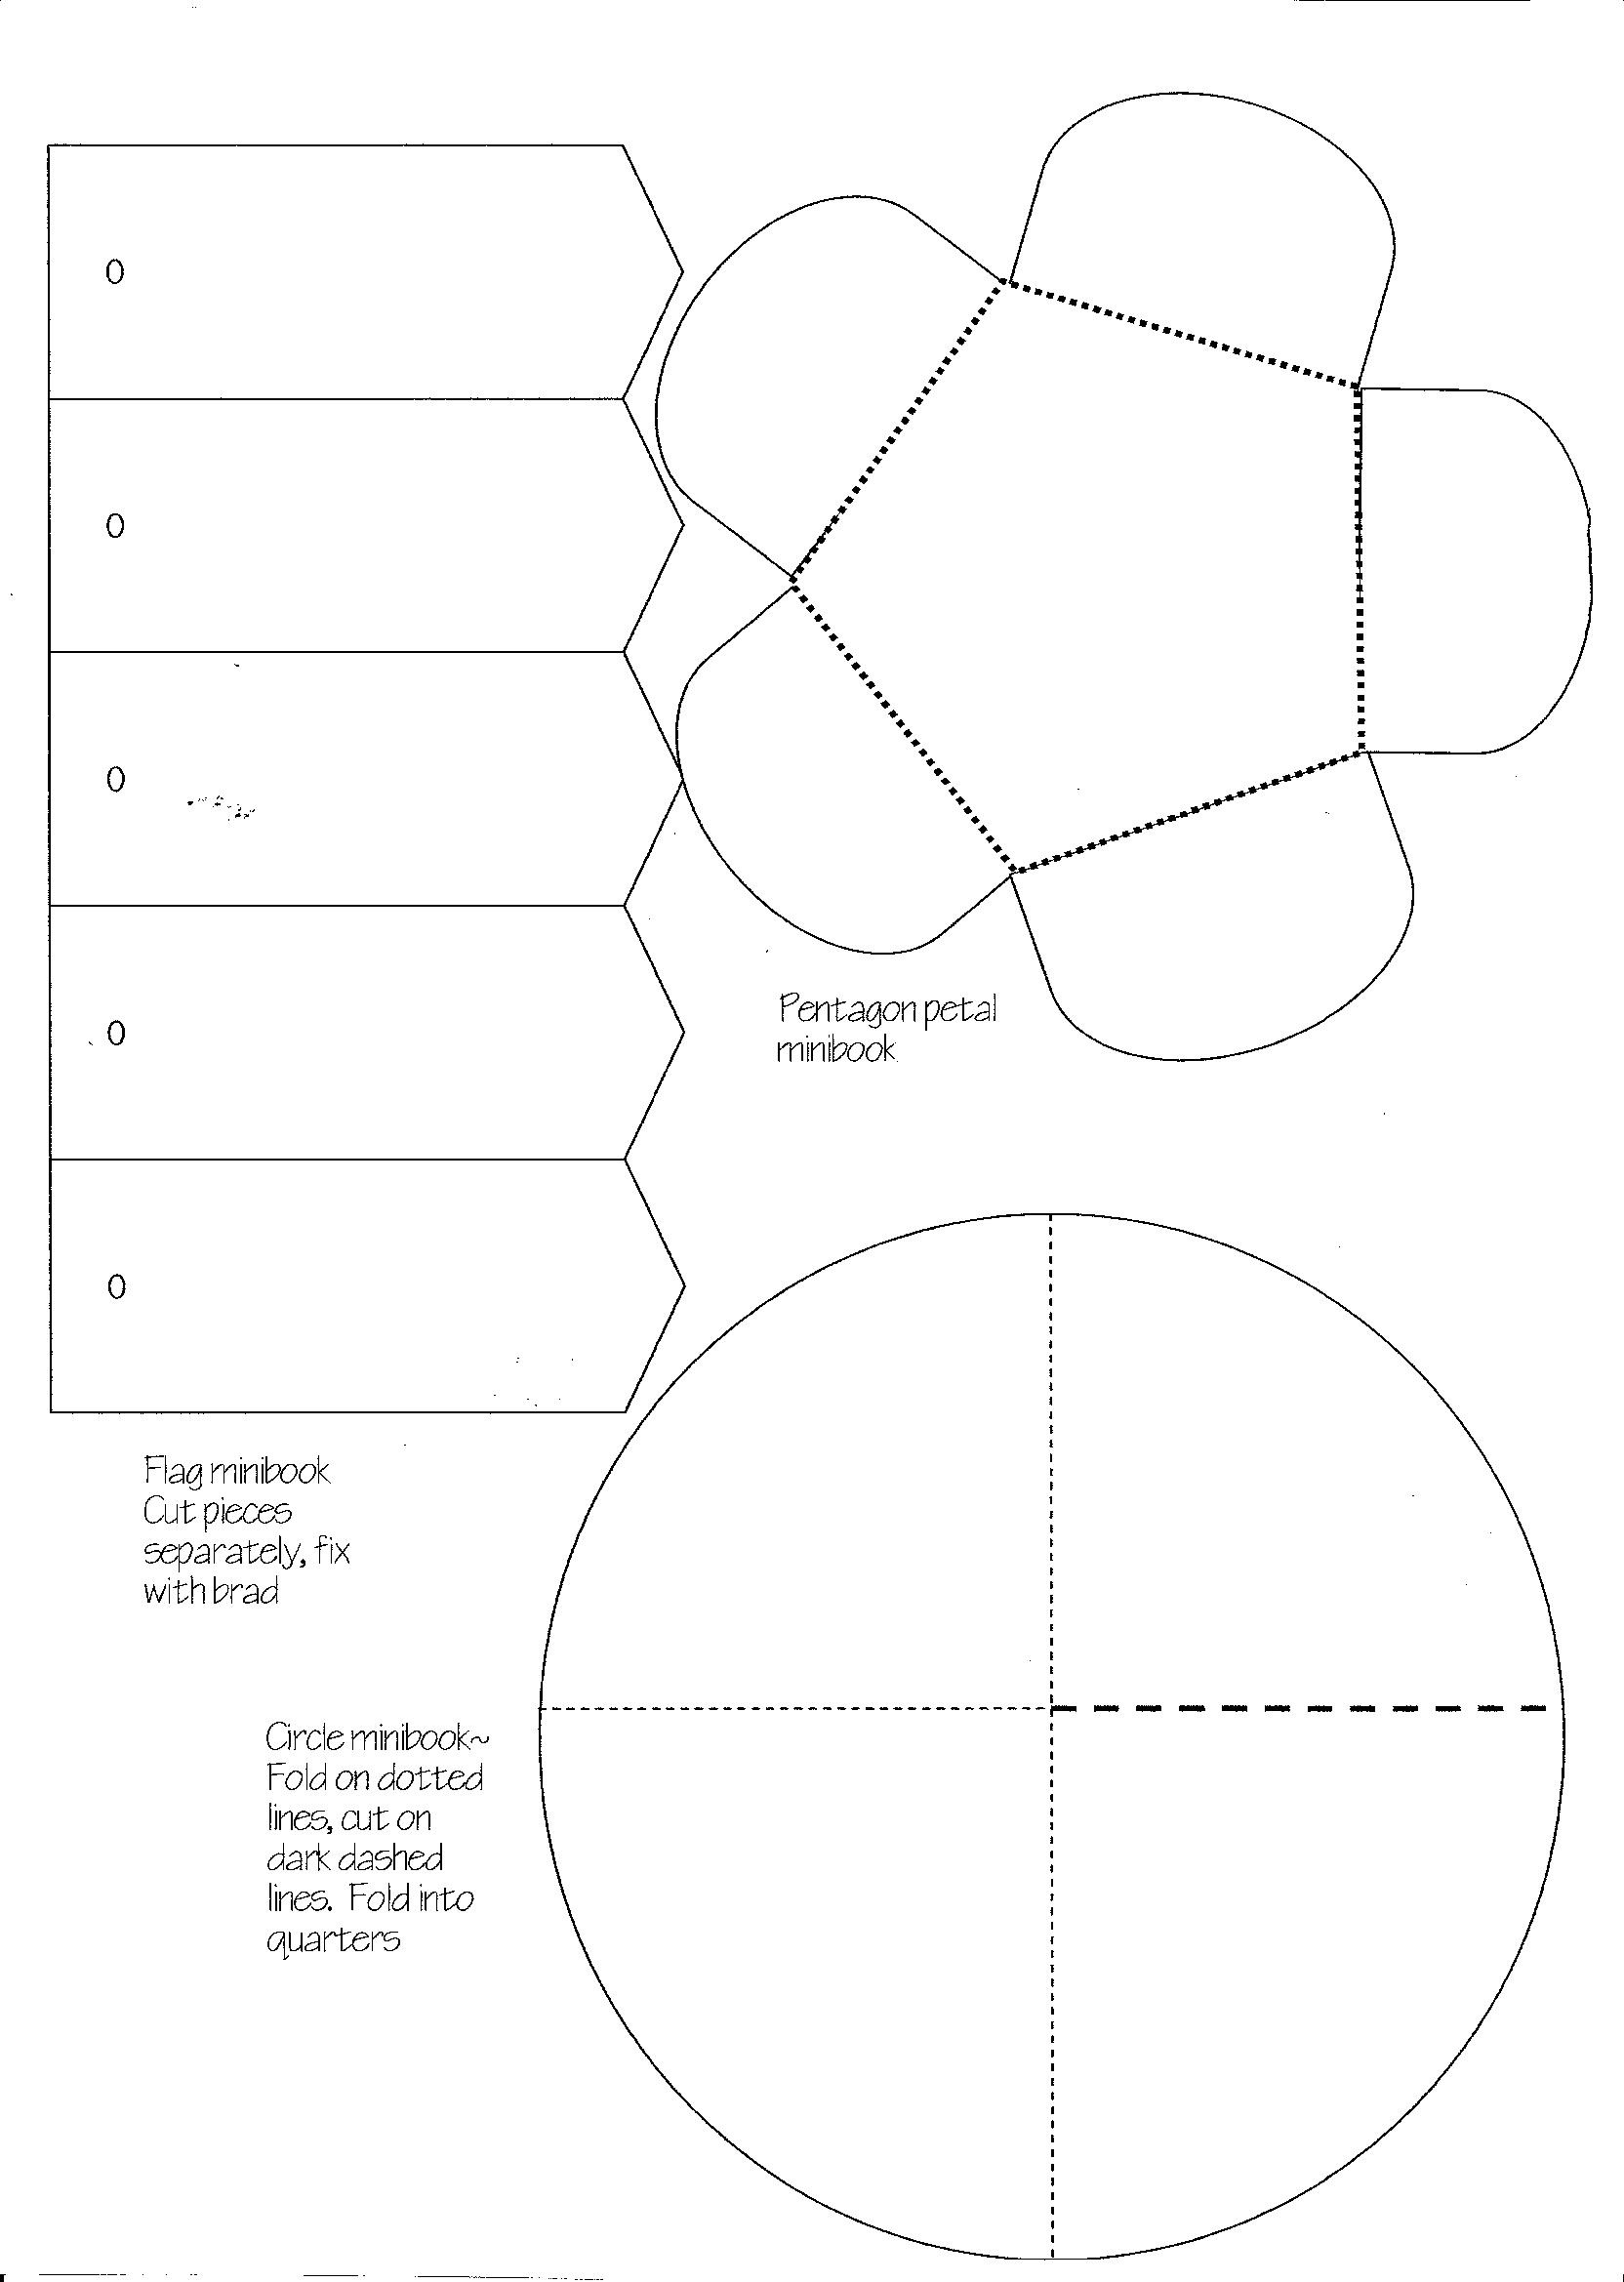 Minibook Master Template Download | Practical Pages - Free Printable Lapbook Templates